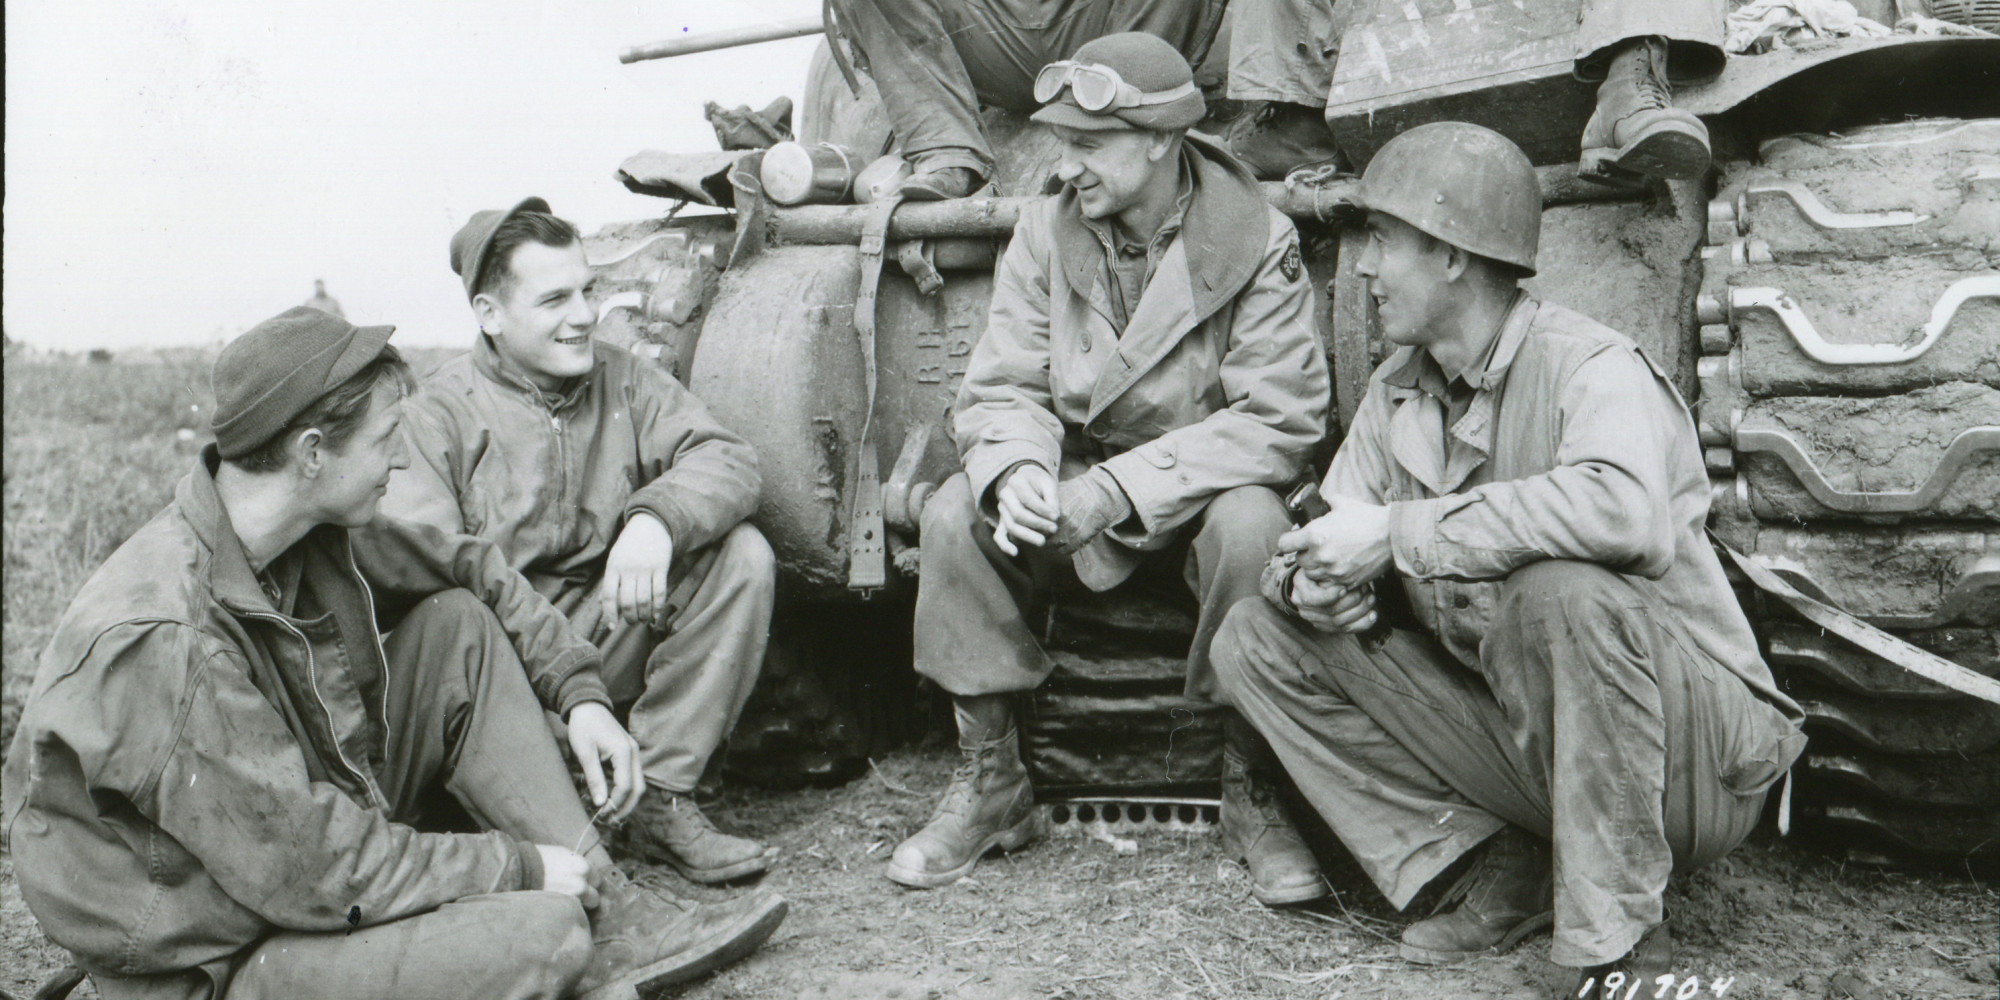 Pyle and his WWII Crew